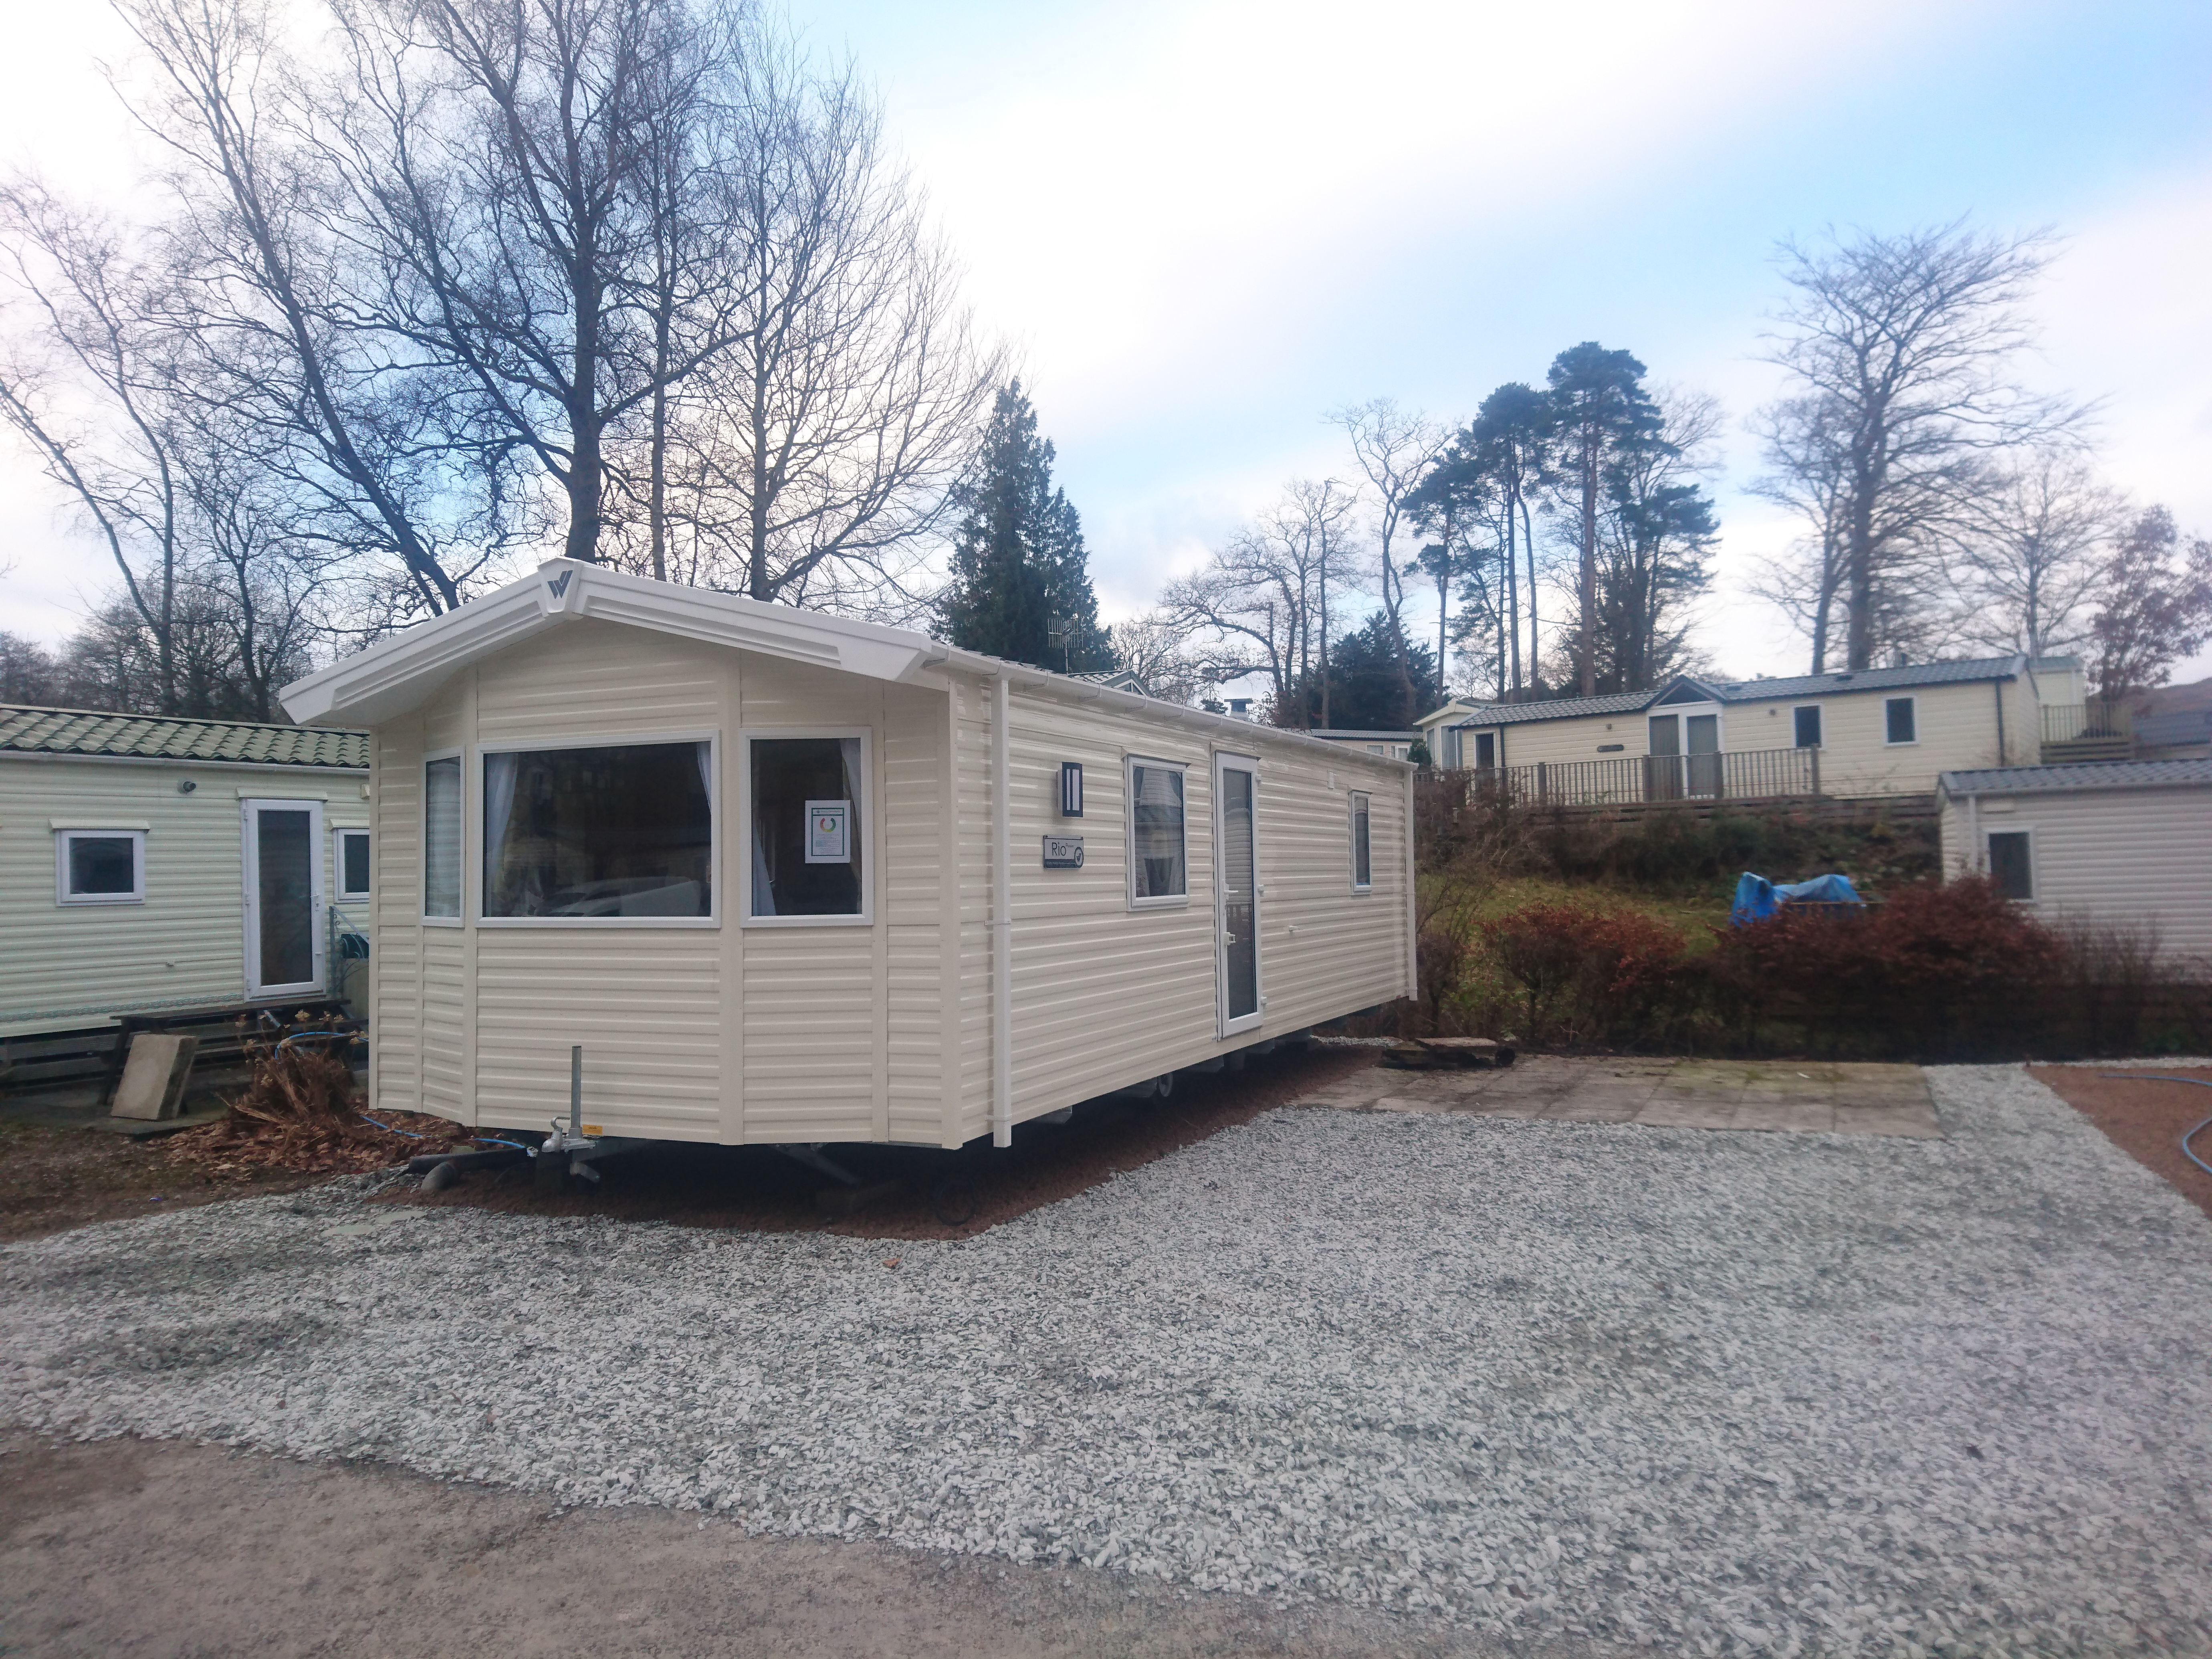 Willerby Rio Premier at Skelwith Fold Caravan Park